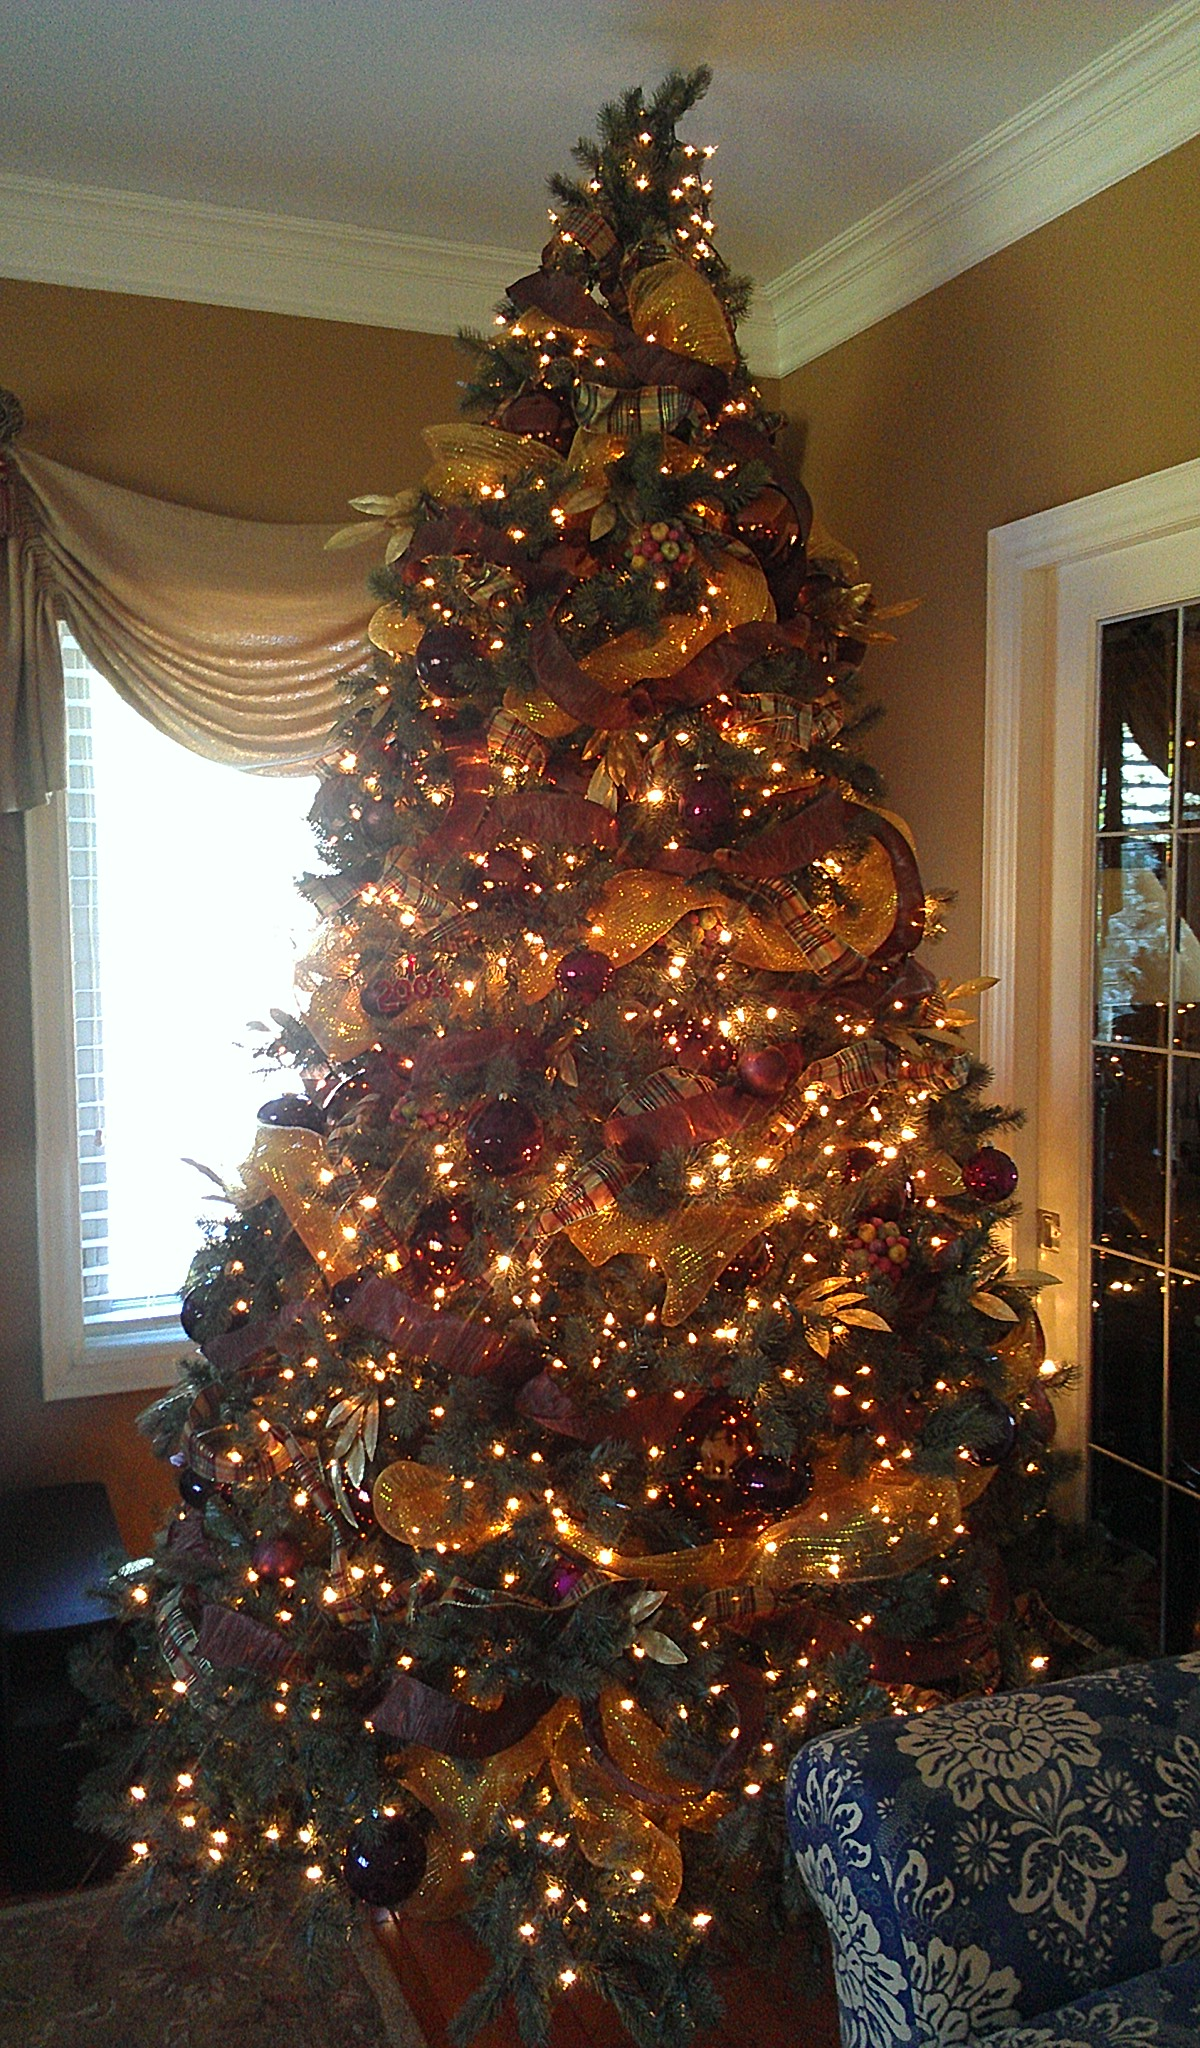 Lots of lights makes for a gorgeous tree!